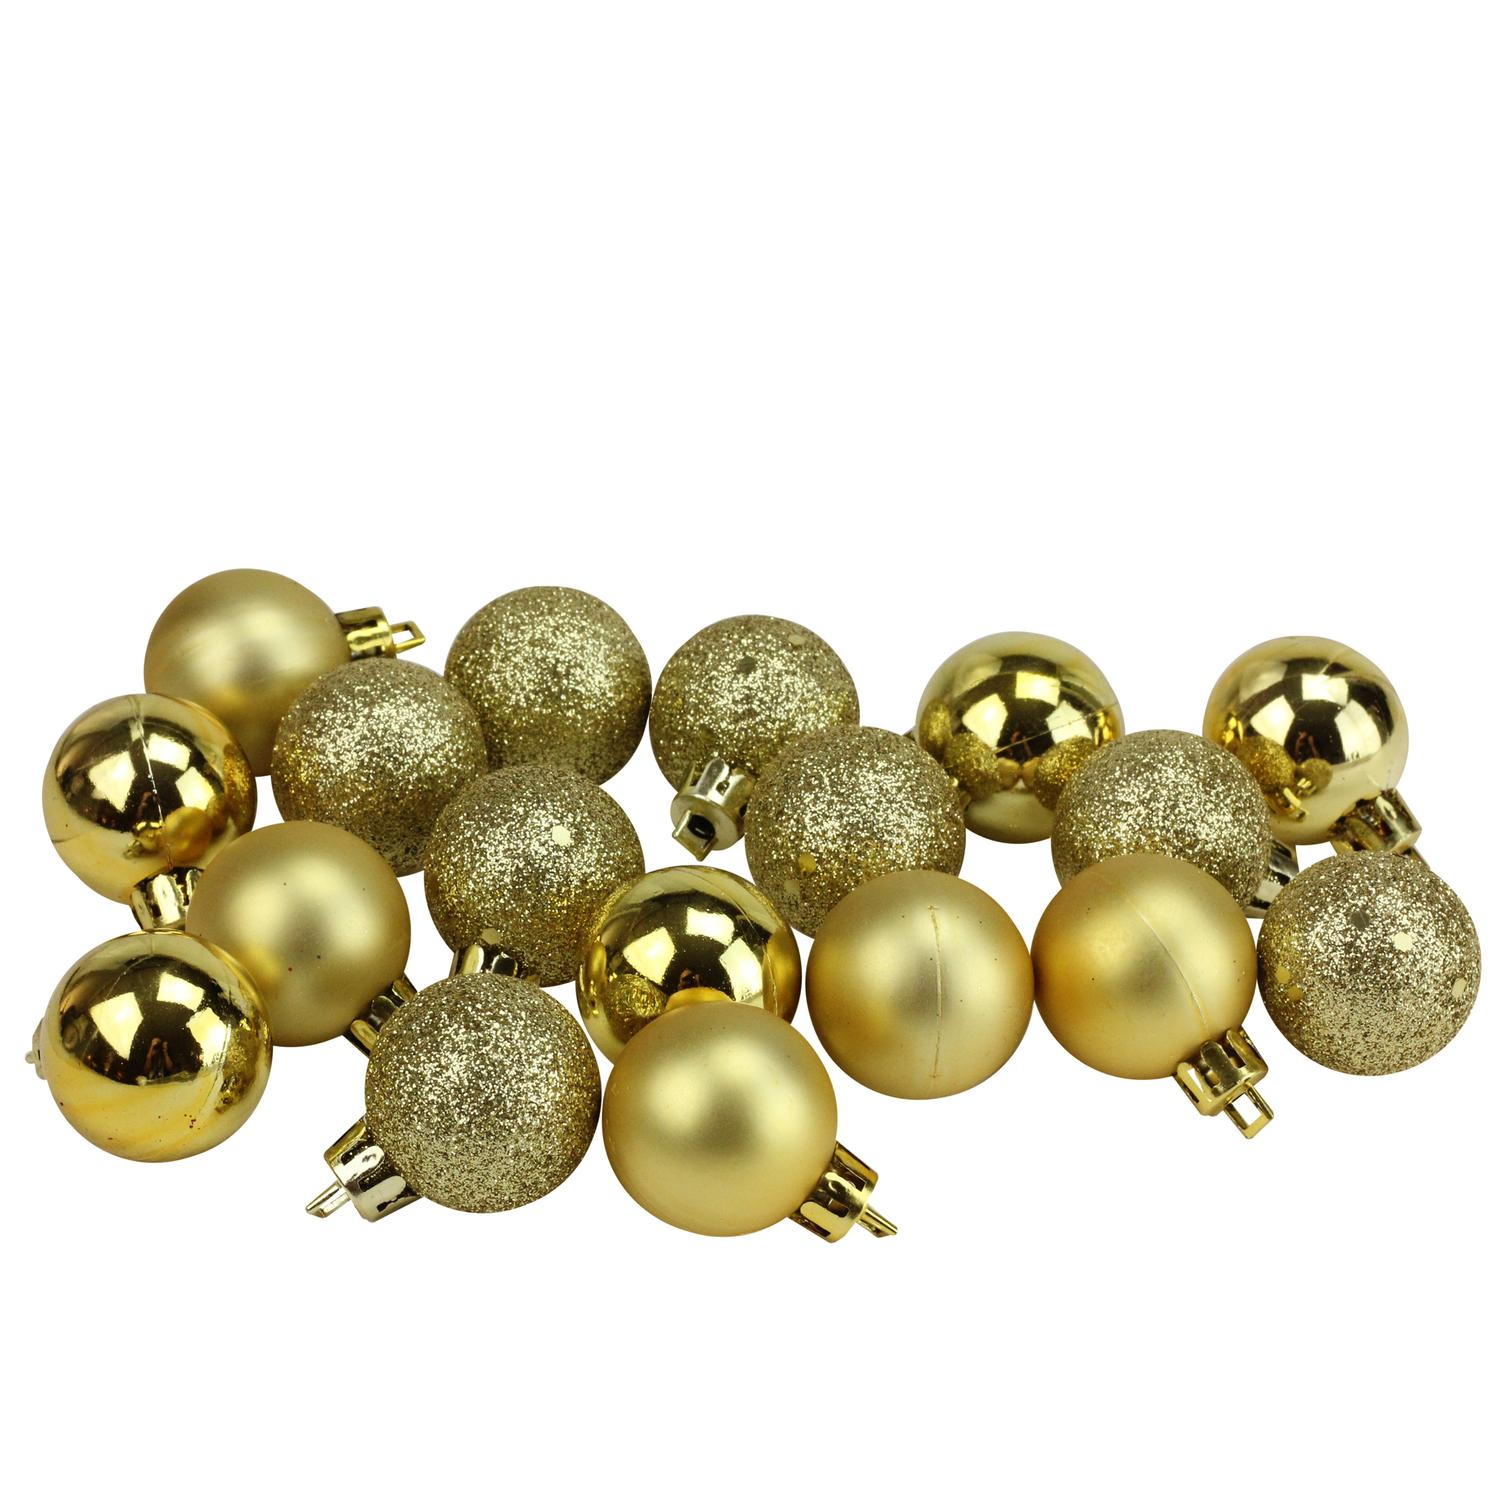 "18ct Vegas Gold Shatterproof 4-Finish Christmas Ball Ornaments 1.25"" (30mm)"